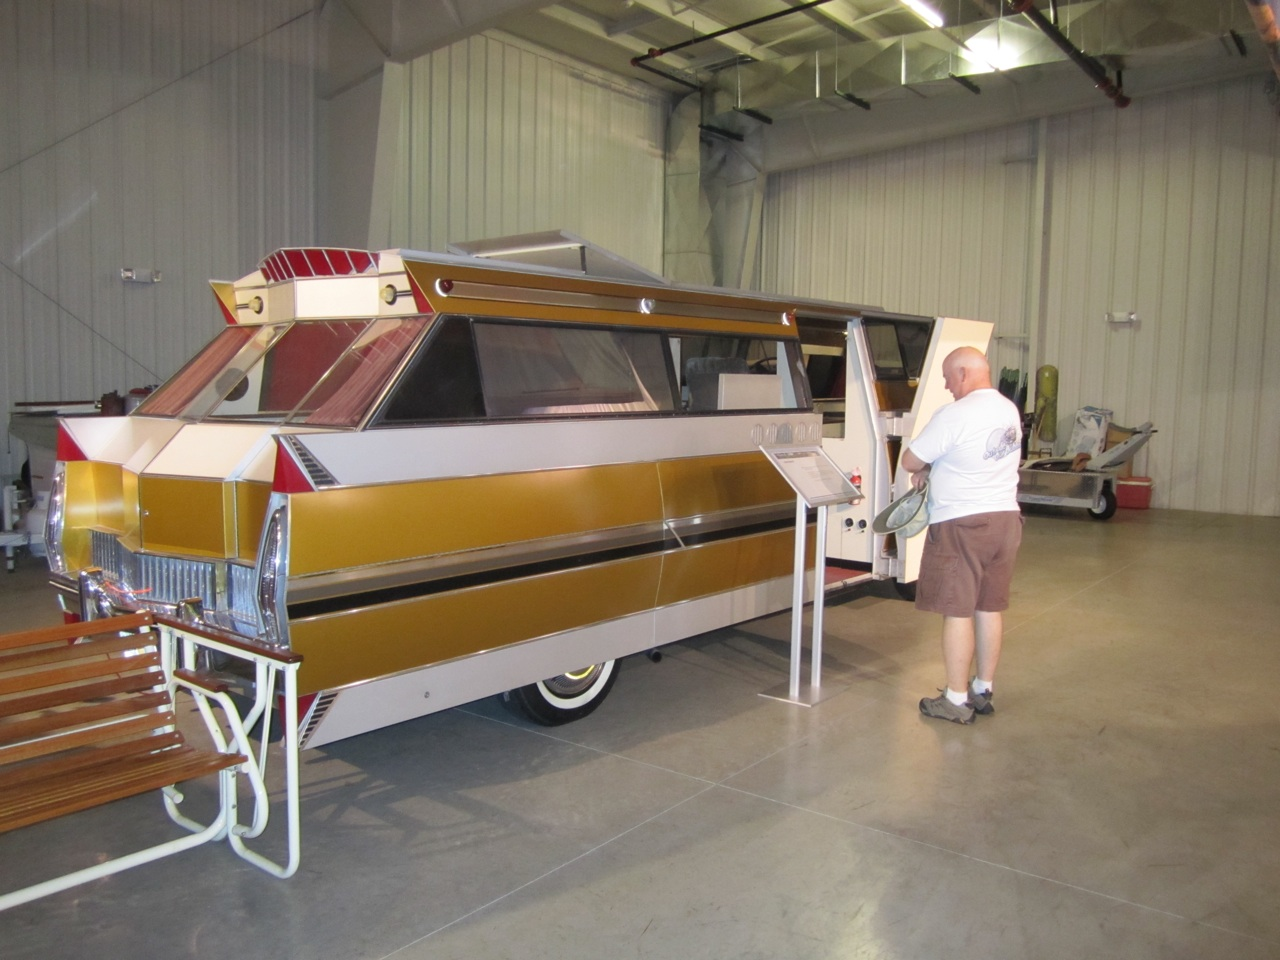 David Checking Out A Custom RV. It Was Made To Fit Into An Existing Garage Attached To A House.